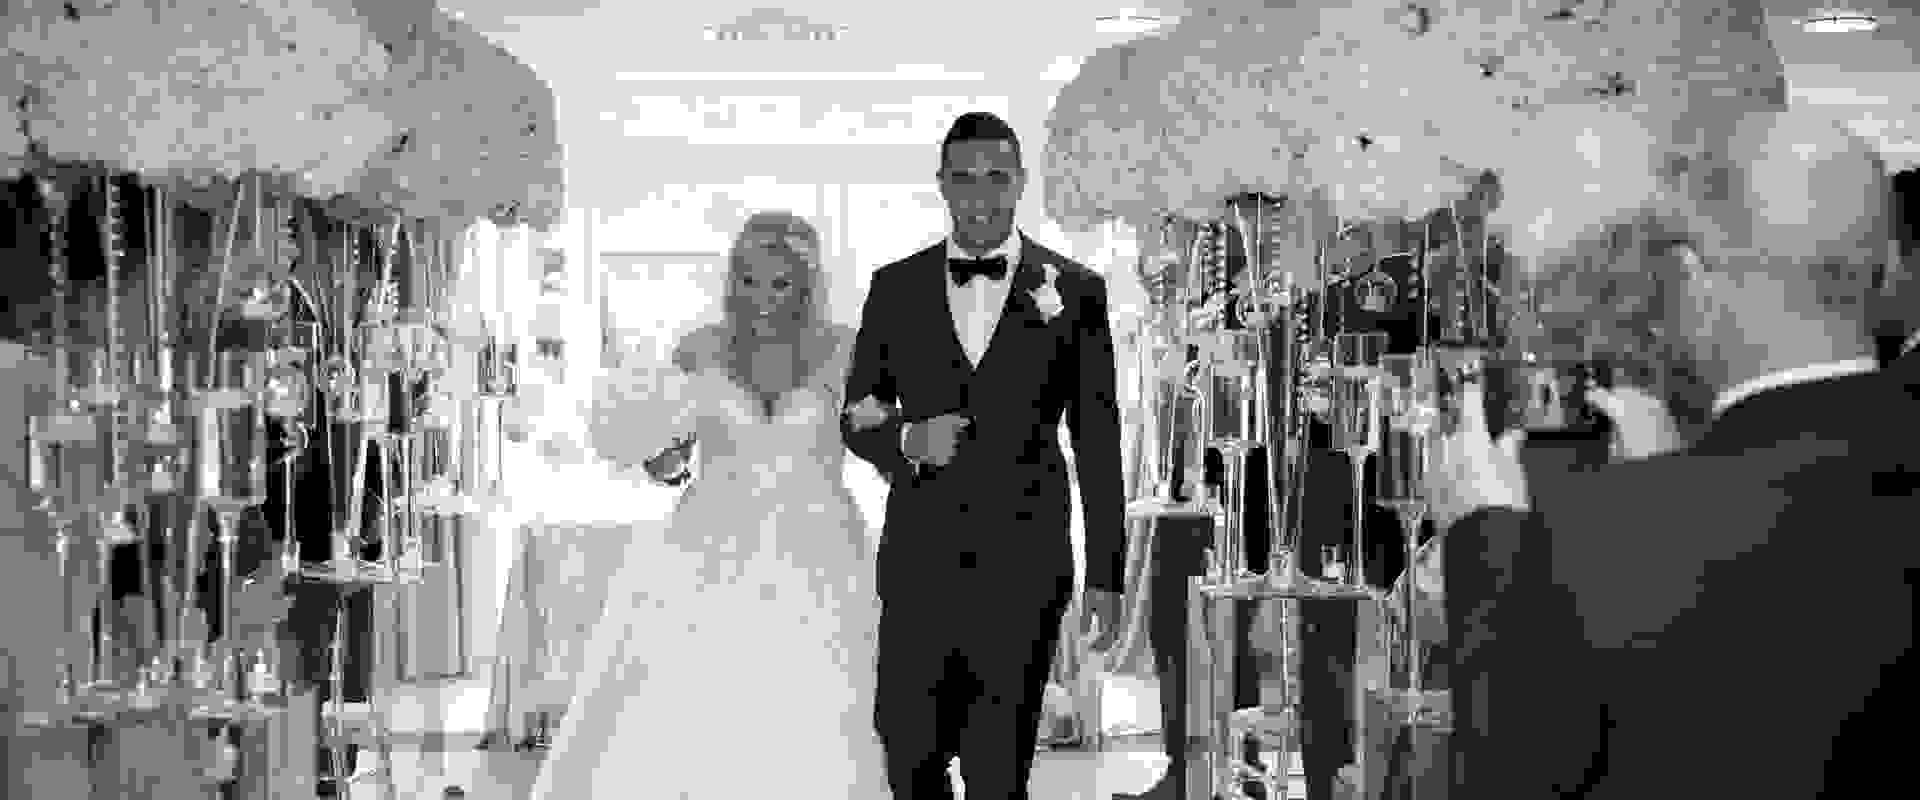 Black and white photo of a bespoke wedding, with a bride and groom walking away from the aisle after saying their vows surrounded by white confetti, bouquets and flute glasses